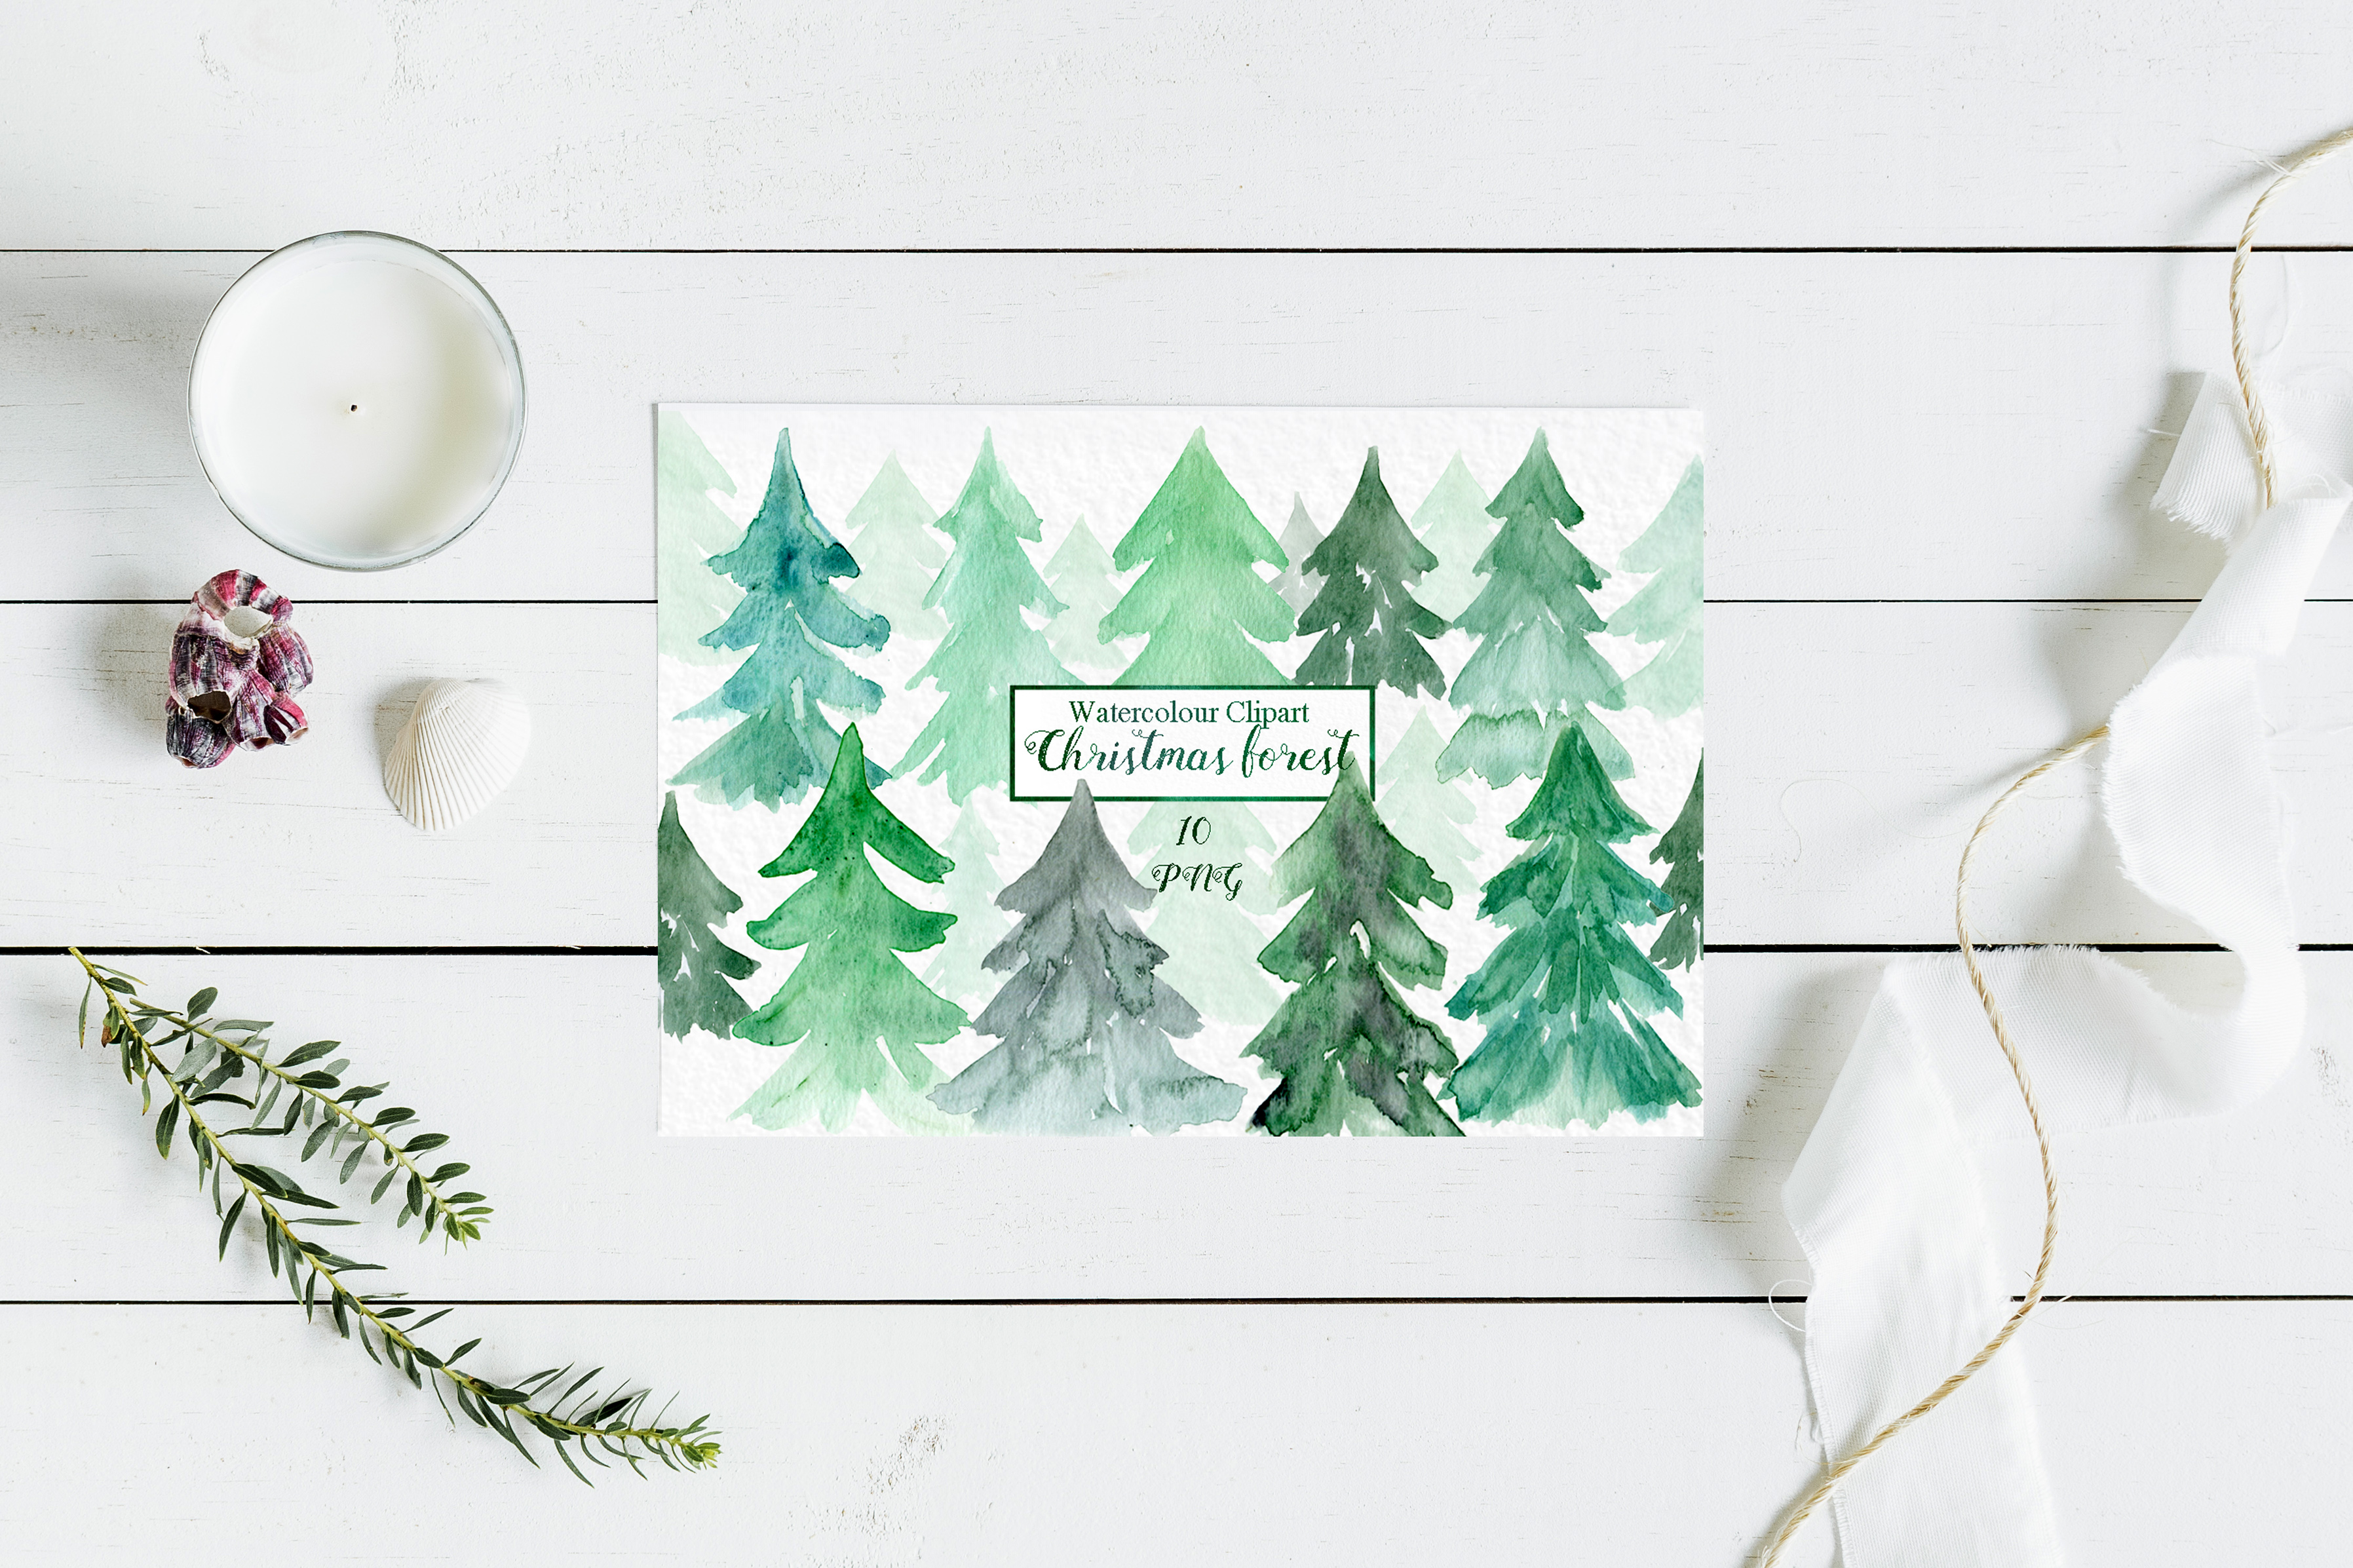 Watercolour christmas forest clipart , forest clipart example image 2